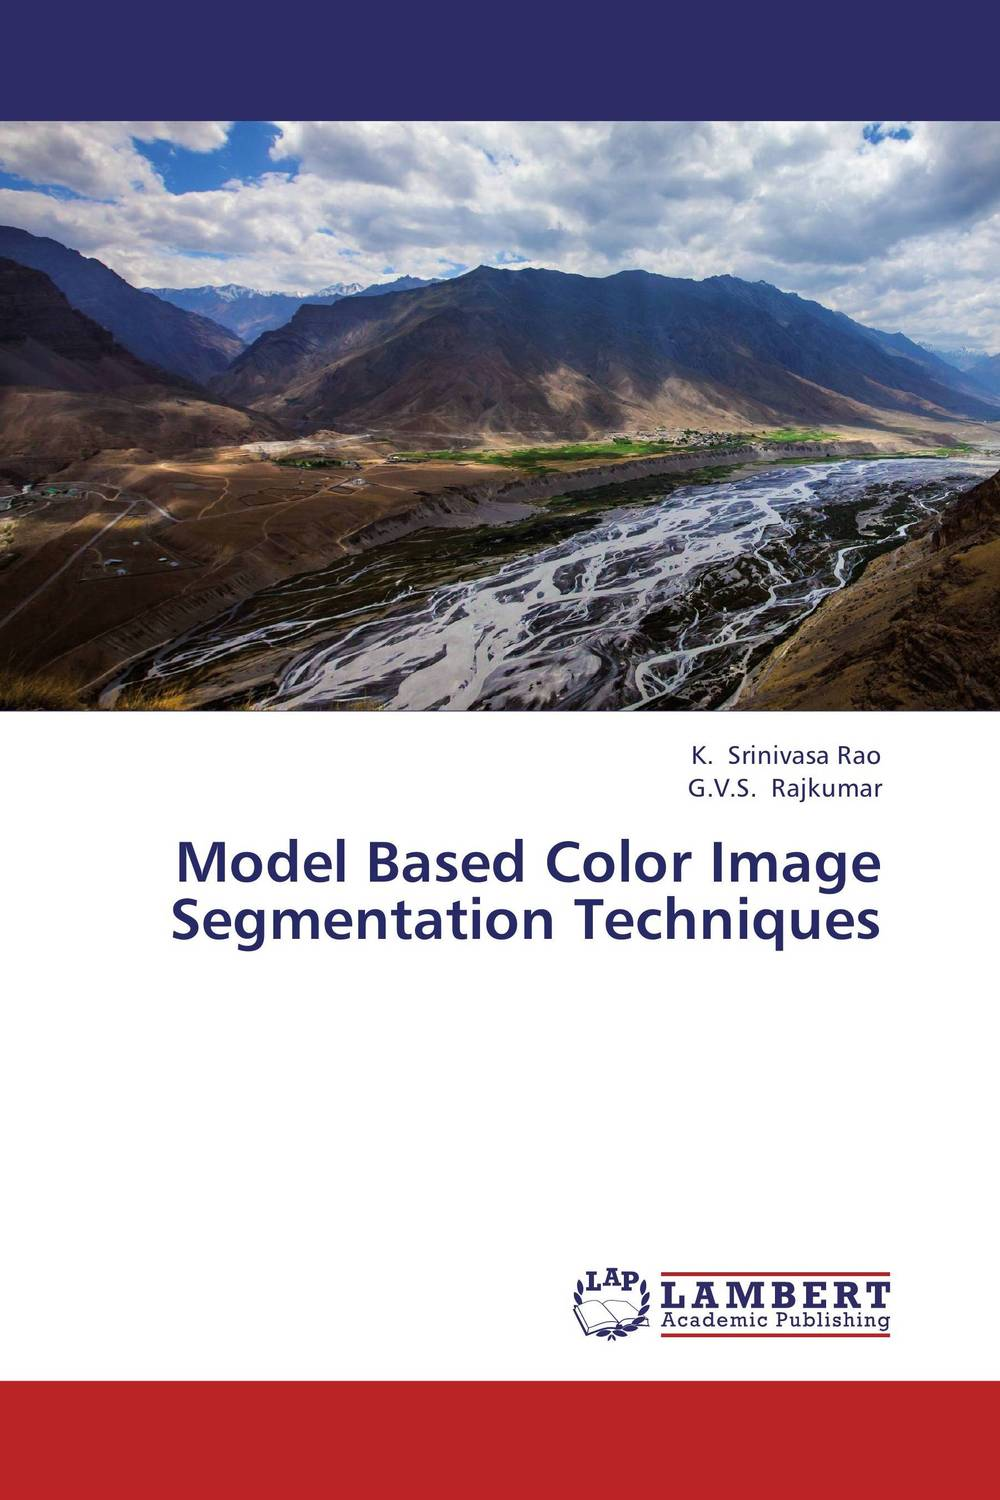 Model Based Color Image Segmentation Techniques clustering and optimization based image segmentation techniques